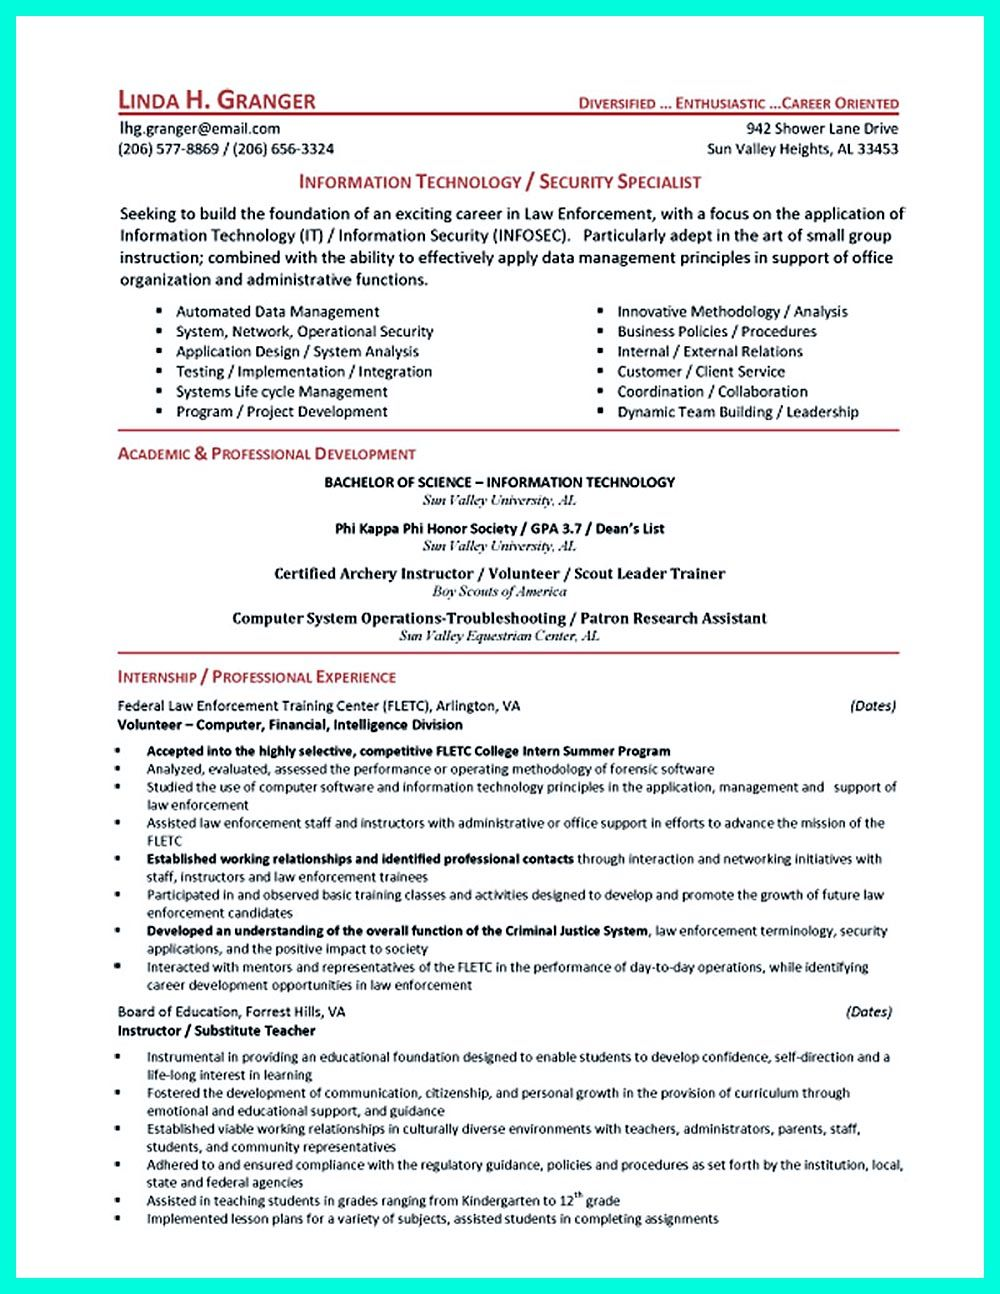 powerful cyber security resume to get hired right away examples student cybersecurity Resume Cybersecurity Resume Examples